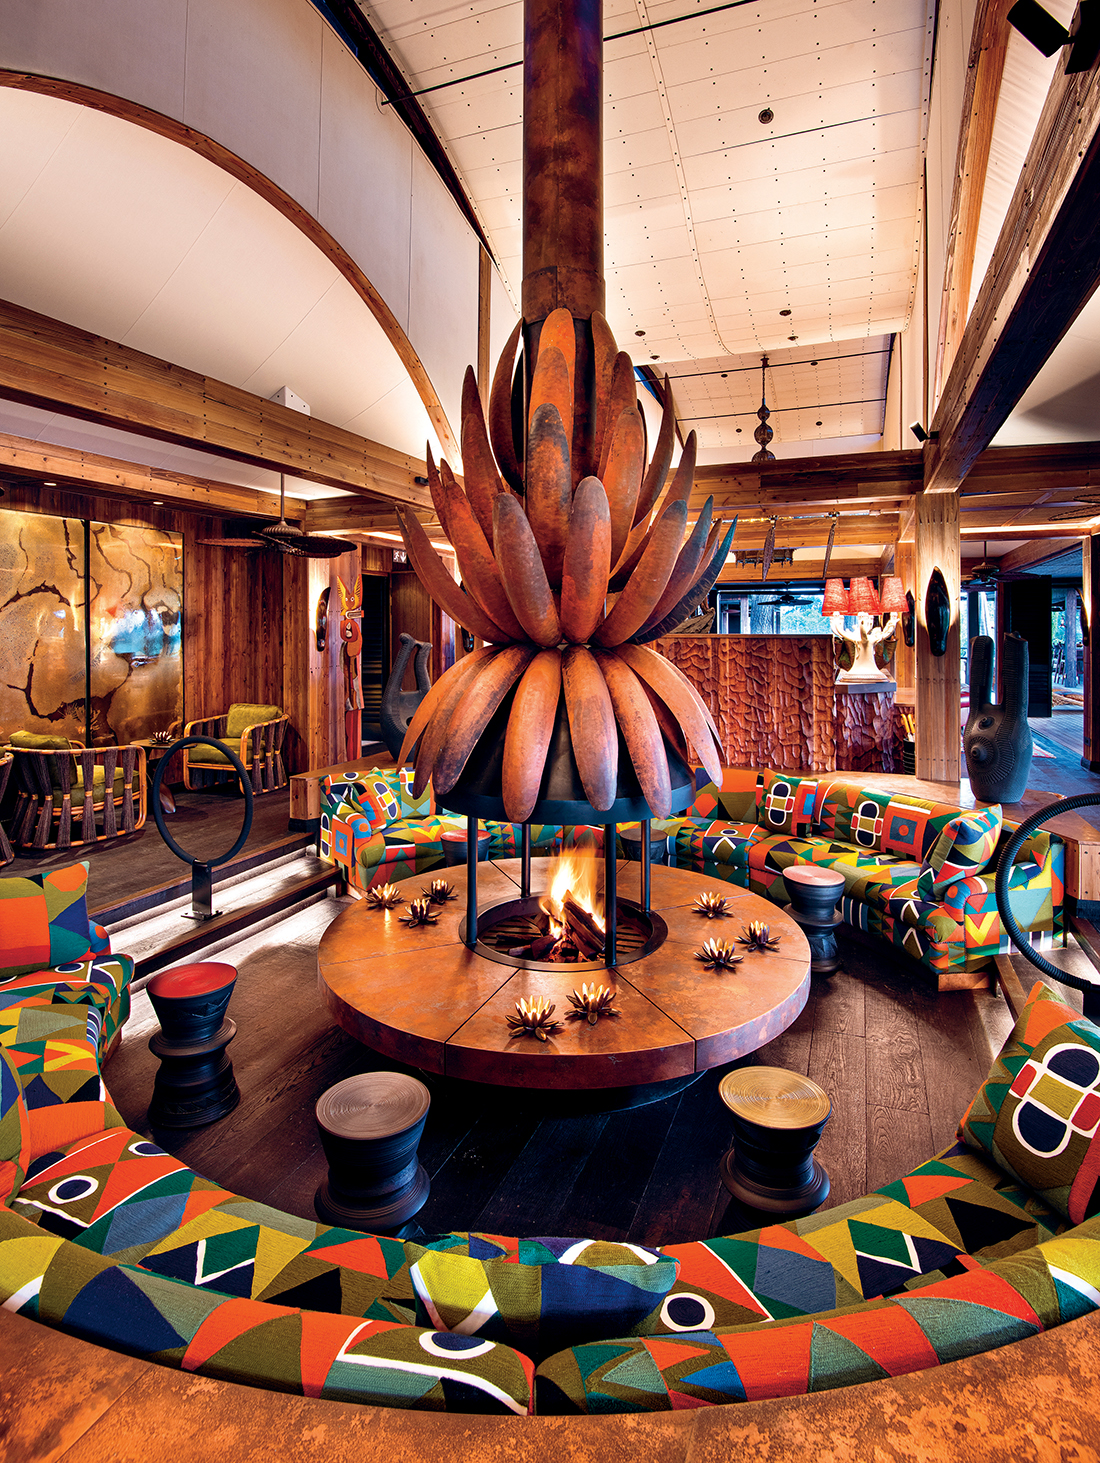 On arrival at Xigera, one of the first spaces guests see is this sunken lounge. The chimney piece is an interpretation of the water lily – the lodge's emblem – by Otto du Plessis and Charles Haupt of Bronze Age. The built-in couches are upholstered in Pierre Frey Ndebeles fabric in Argile, and the ceramic Imbizo side tables are by Chuma Maweni.